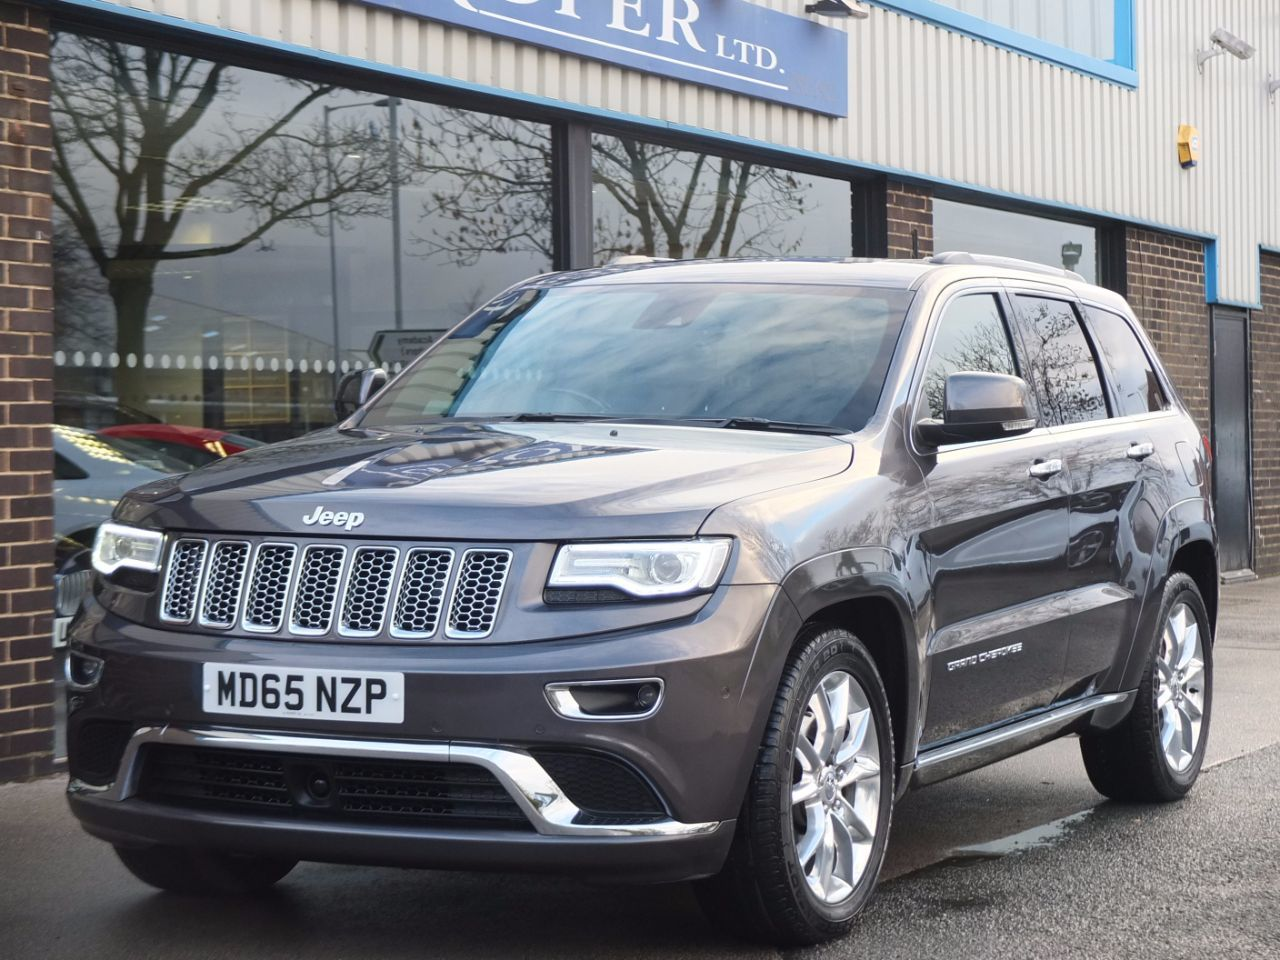 Jeep Grand Cherokee 3.0 CRD Summit Auto Estate Diesel GreyJeep Grand Cherokee 3.0 CRD Summit Auto Estate Diesel Grey at fa Roper Ltd Bradford